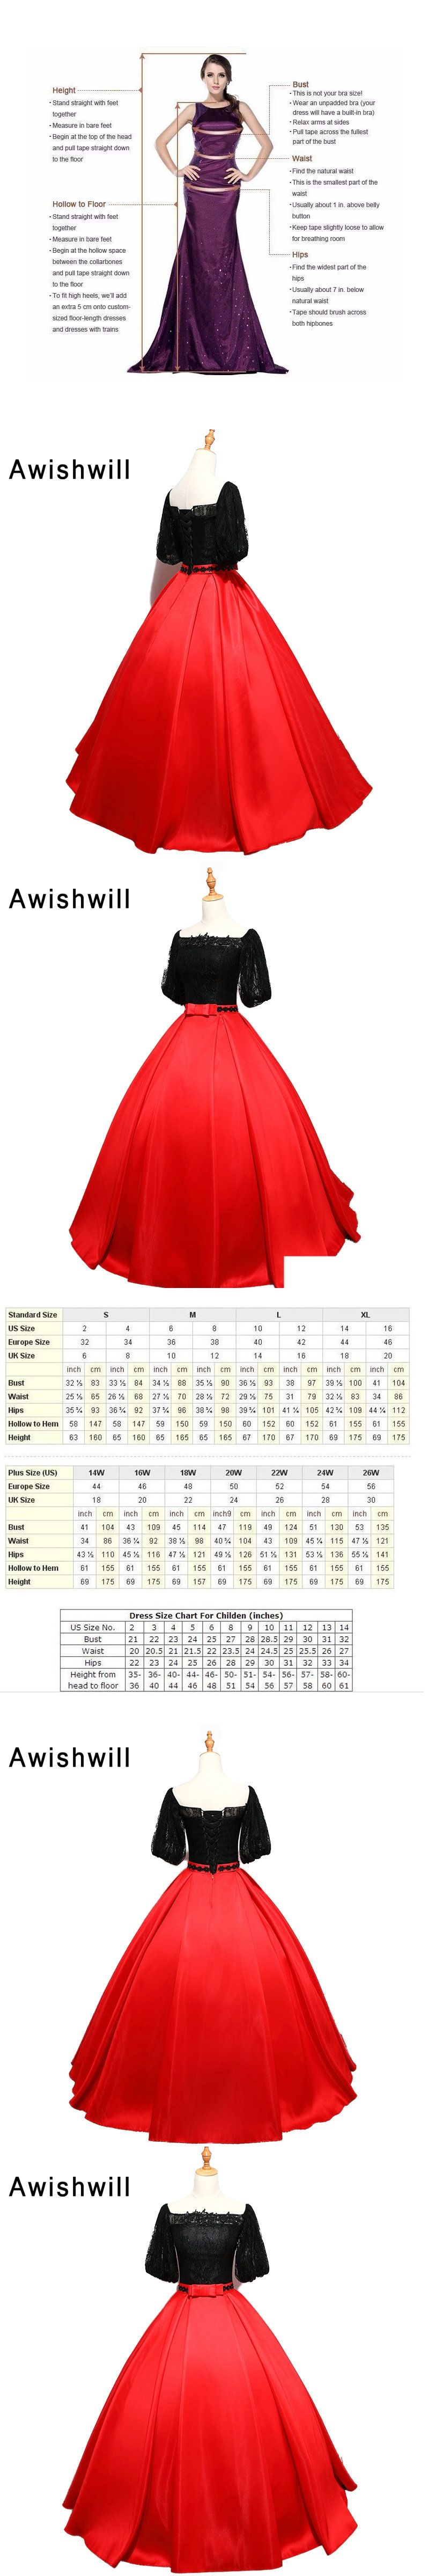 Vintage black and red color formal evening gowns princess prom dress